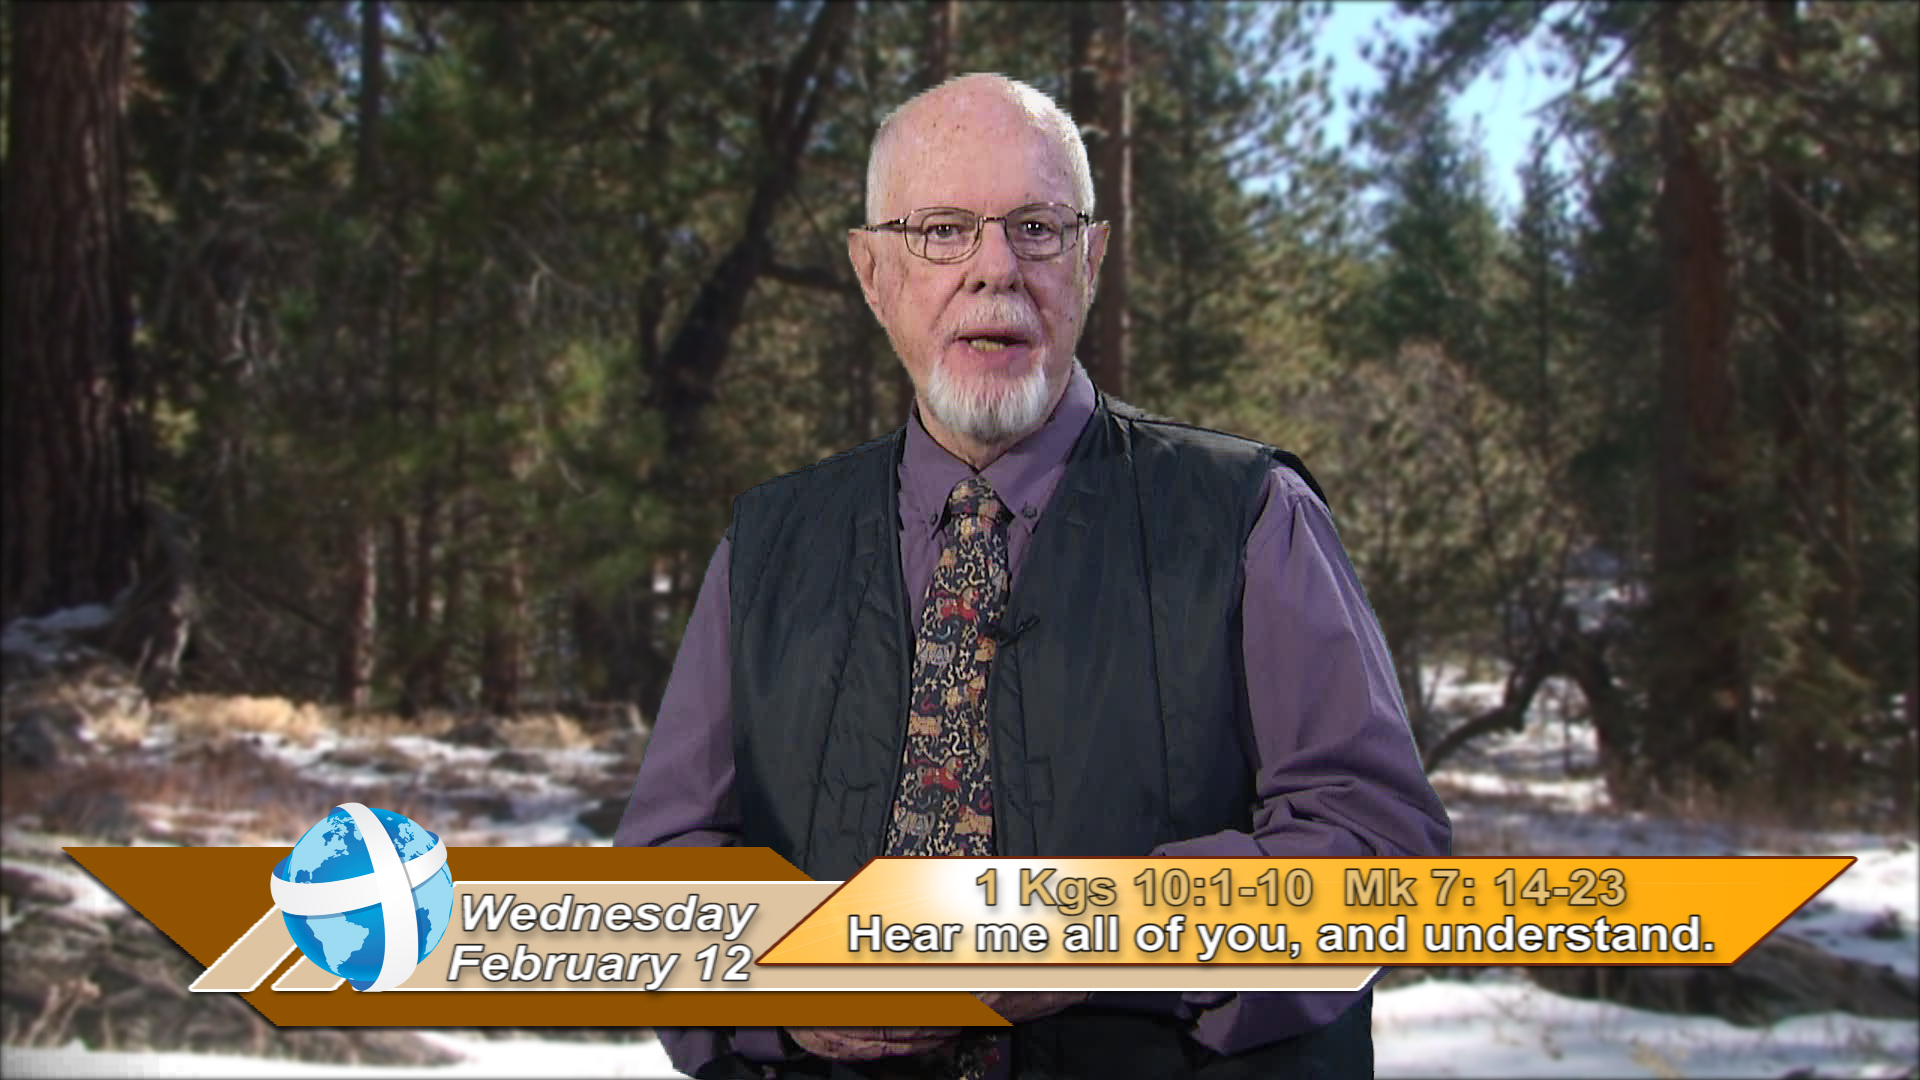 """Artwork for iGod Today with Br. Steve Pardy, SVD;  Today's topic:   """"Hear me all of you, and understand."""""""